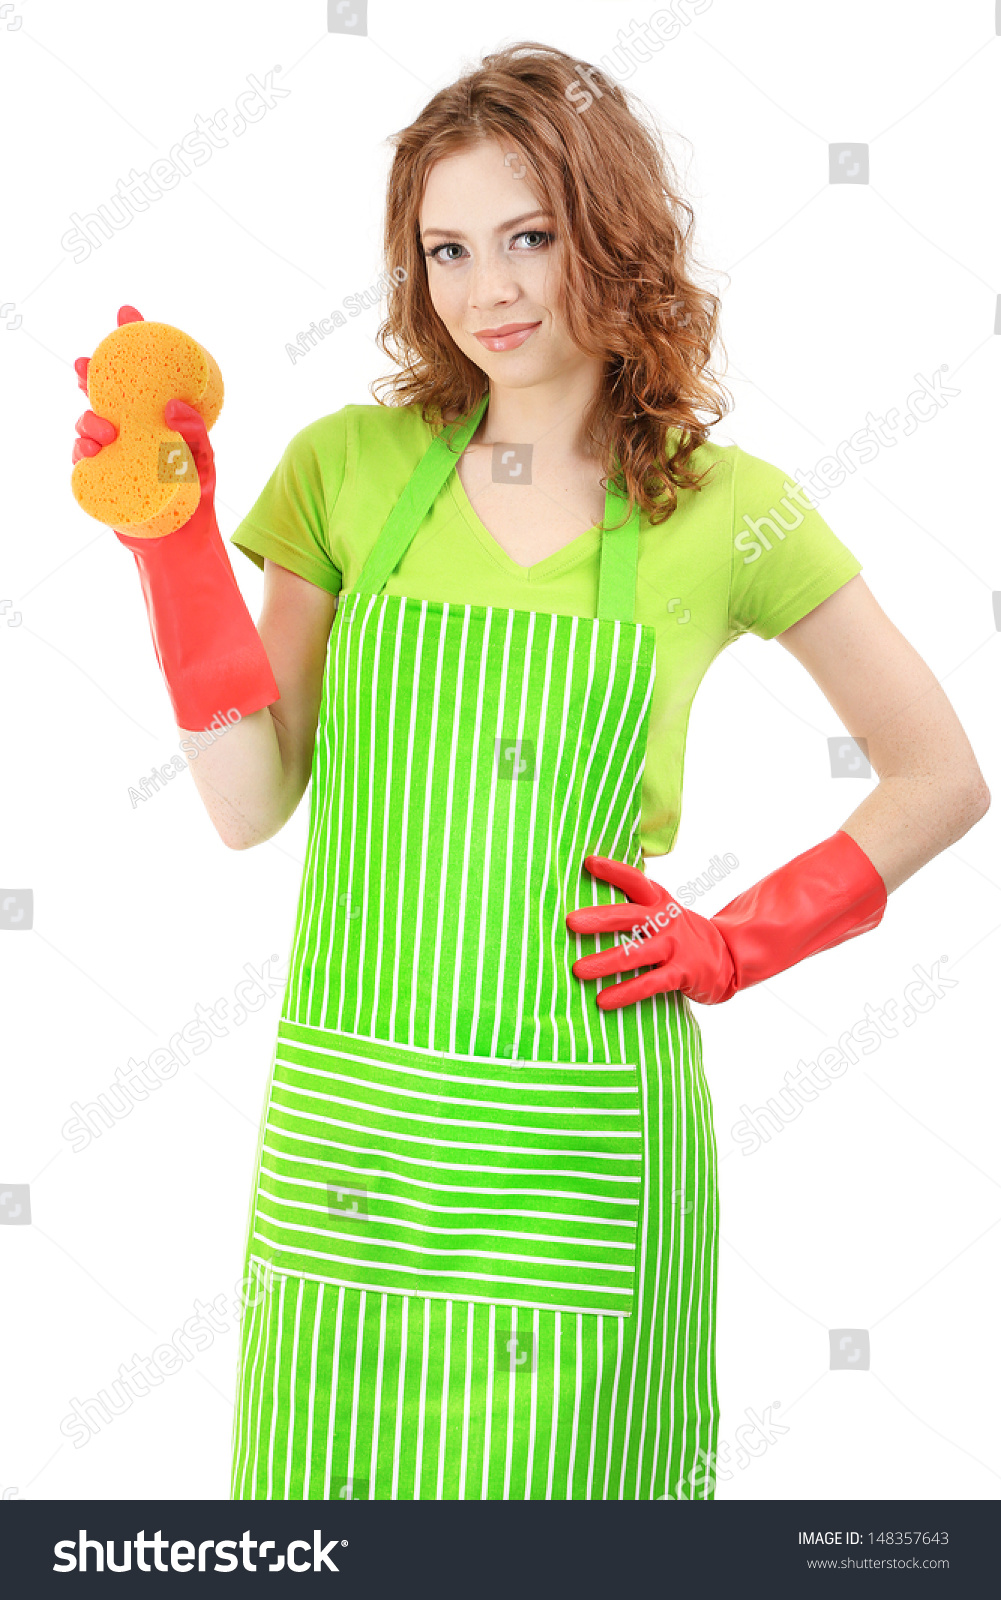 White apron ladies - White Apron Green Thumb Young Woman Wearing Green Apron And Rubber Gloves With Sponge Isolated